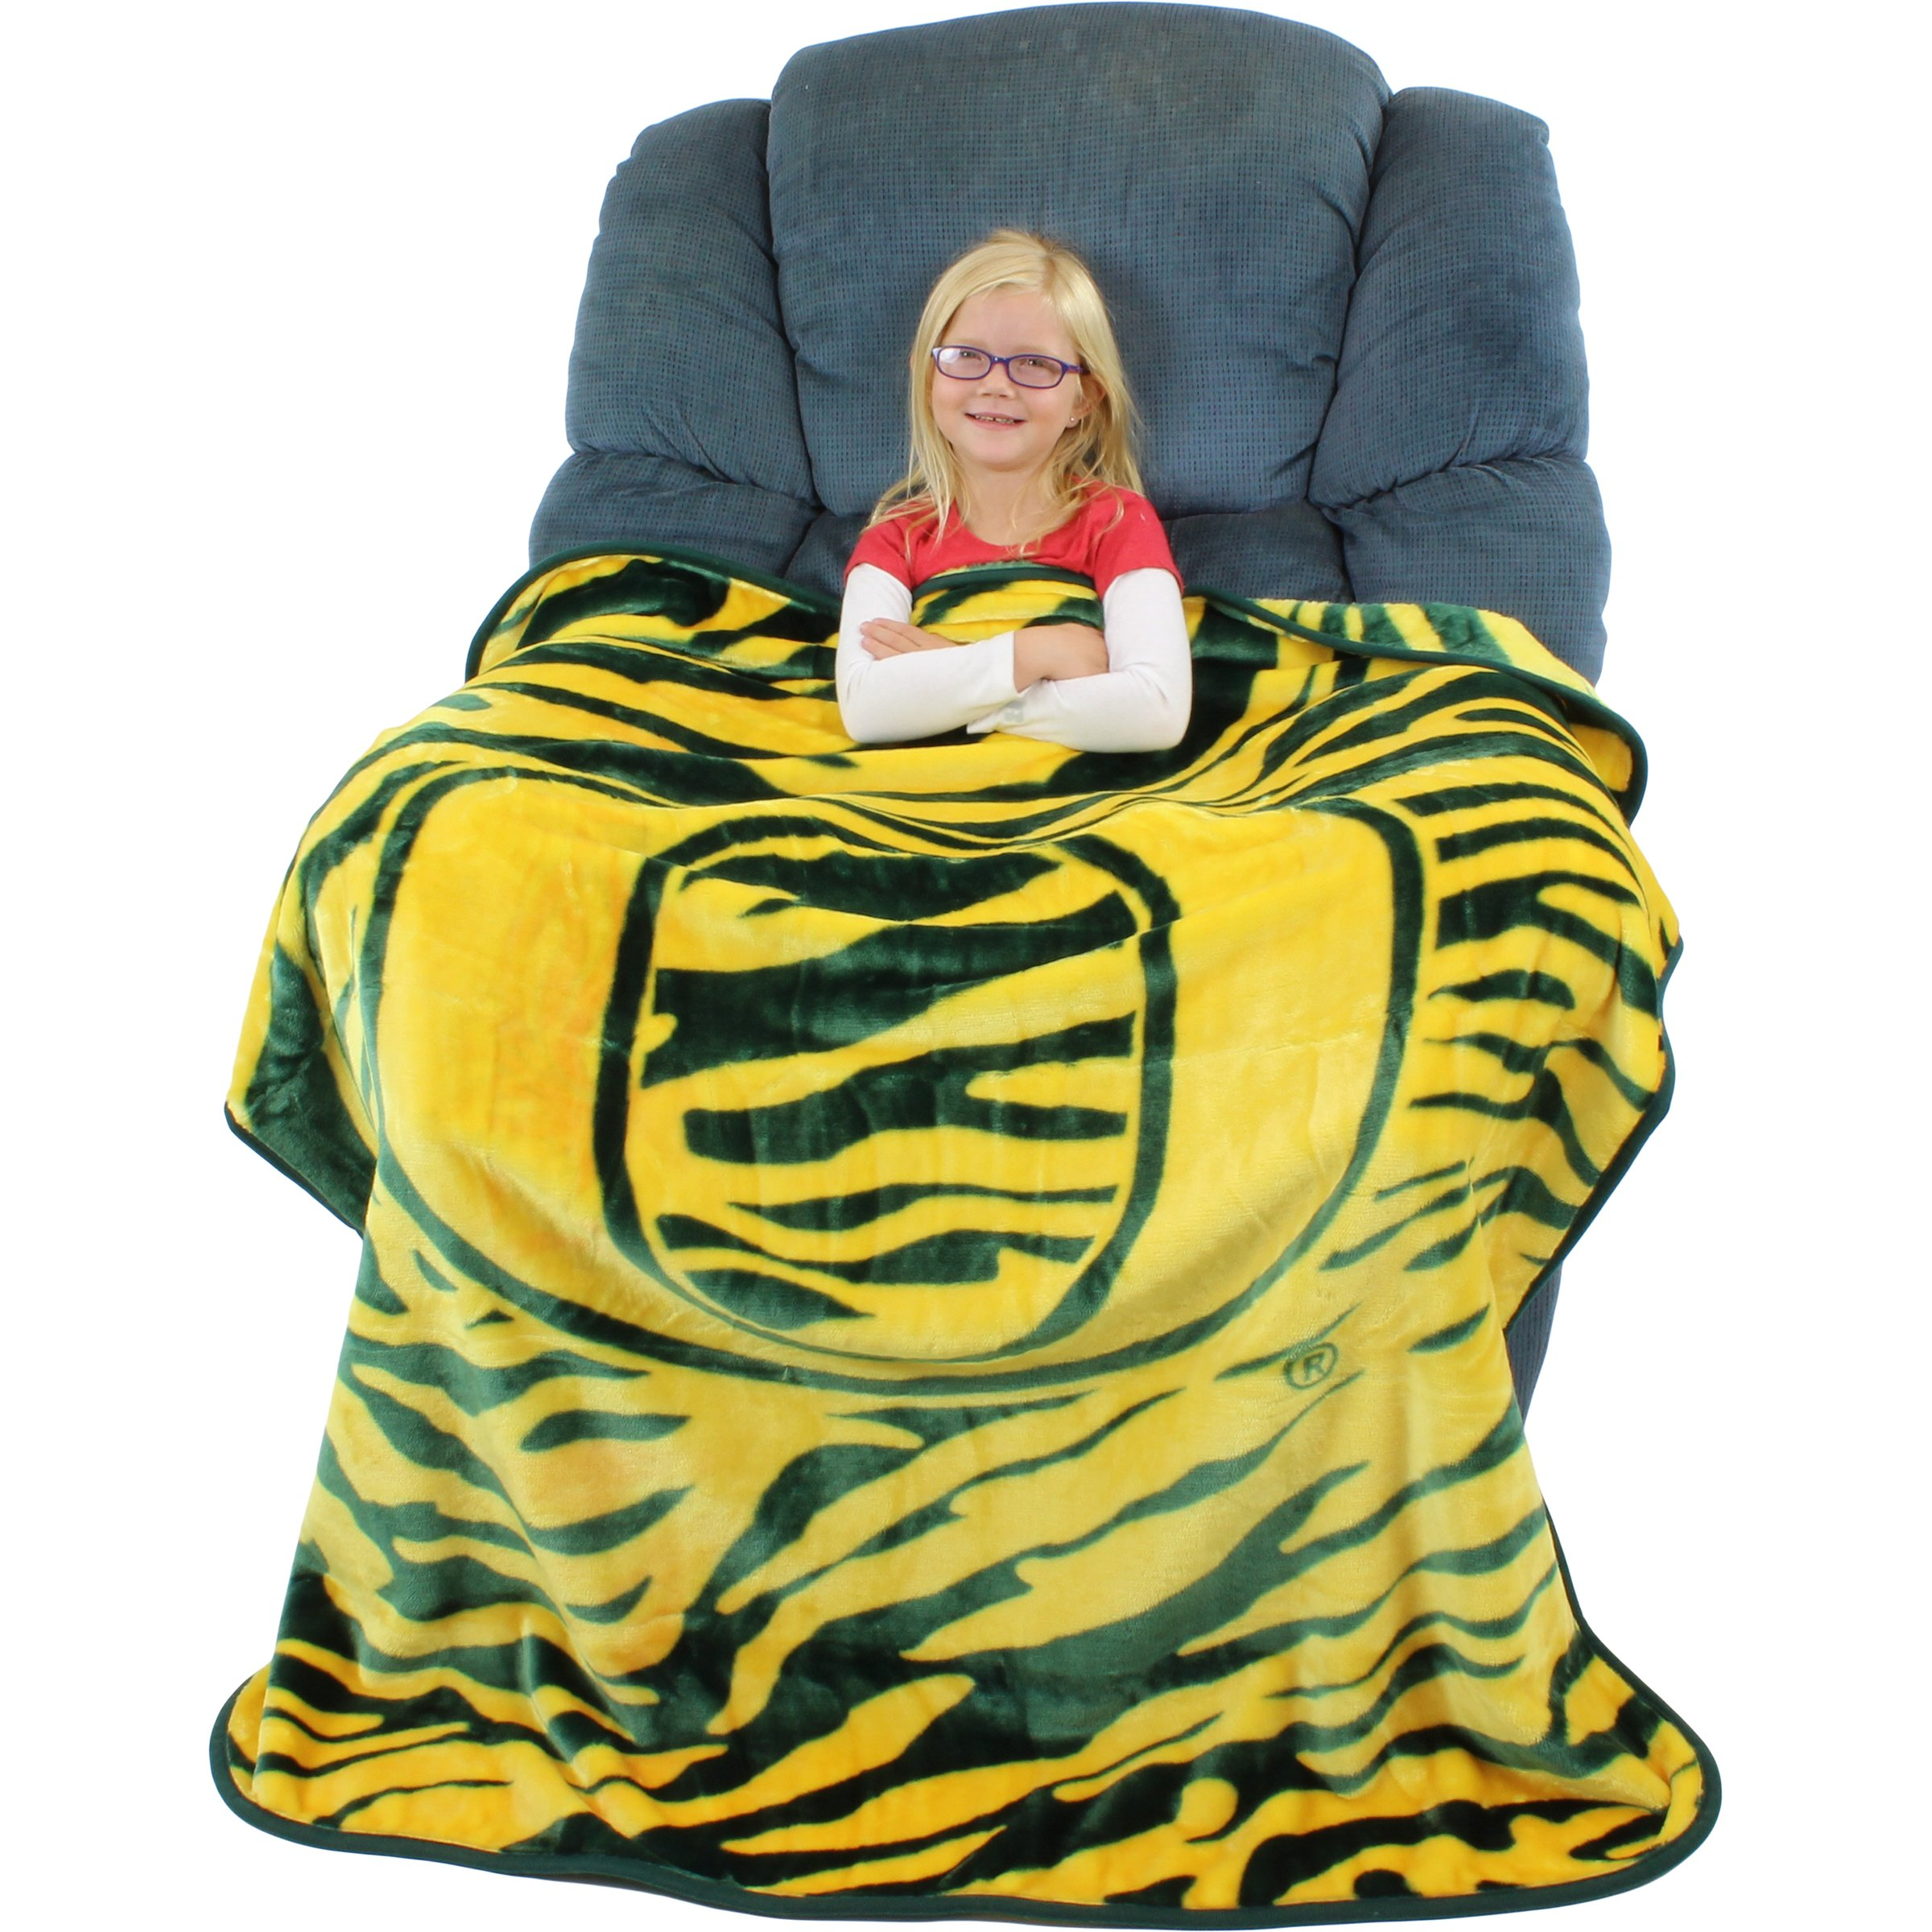 College Covers Oregon Ducks Super Soft Raschel Throw Blanket, 50'' x 60''